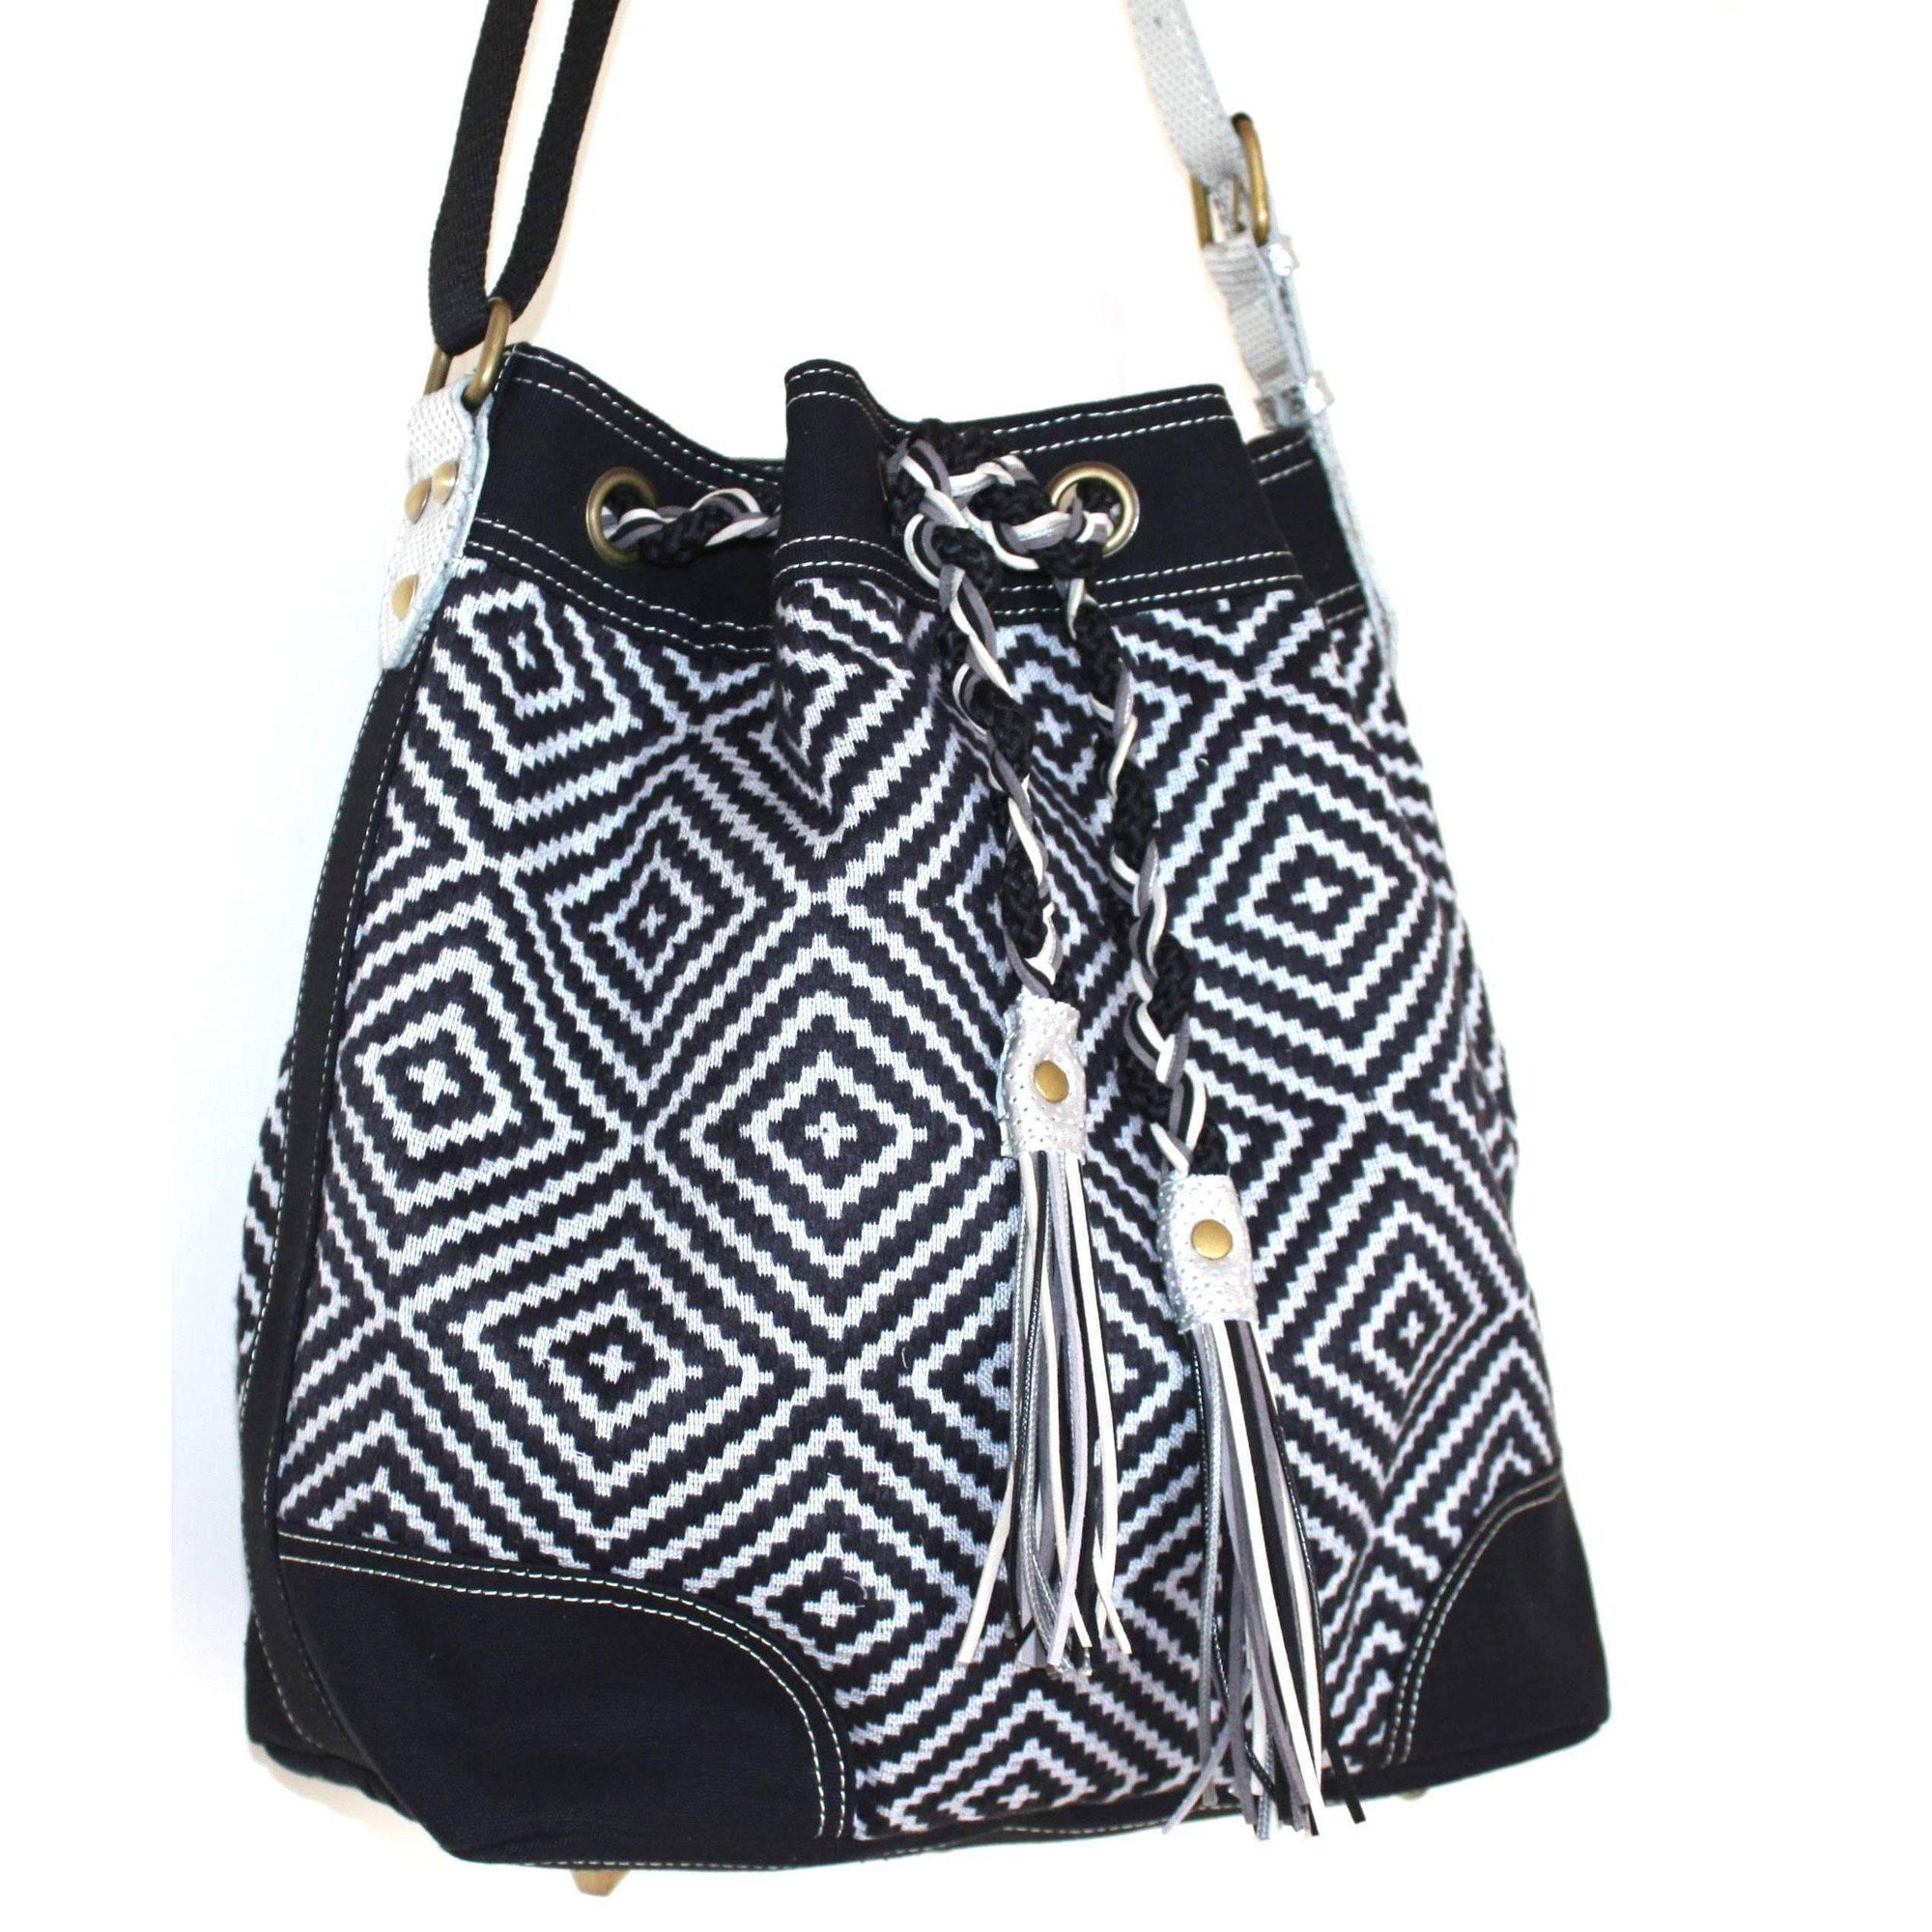 Valerie Cordier Luis Mai Chau Black and Grey Bucket Bag-Valerie Cordier-Temples and Markets